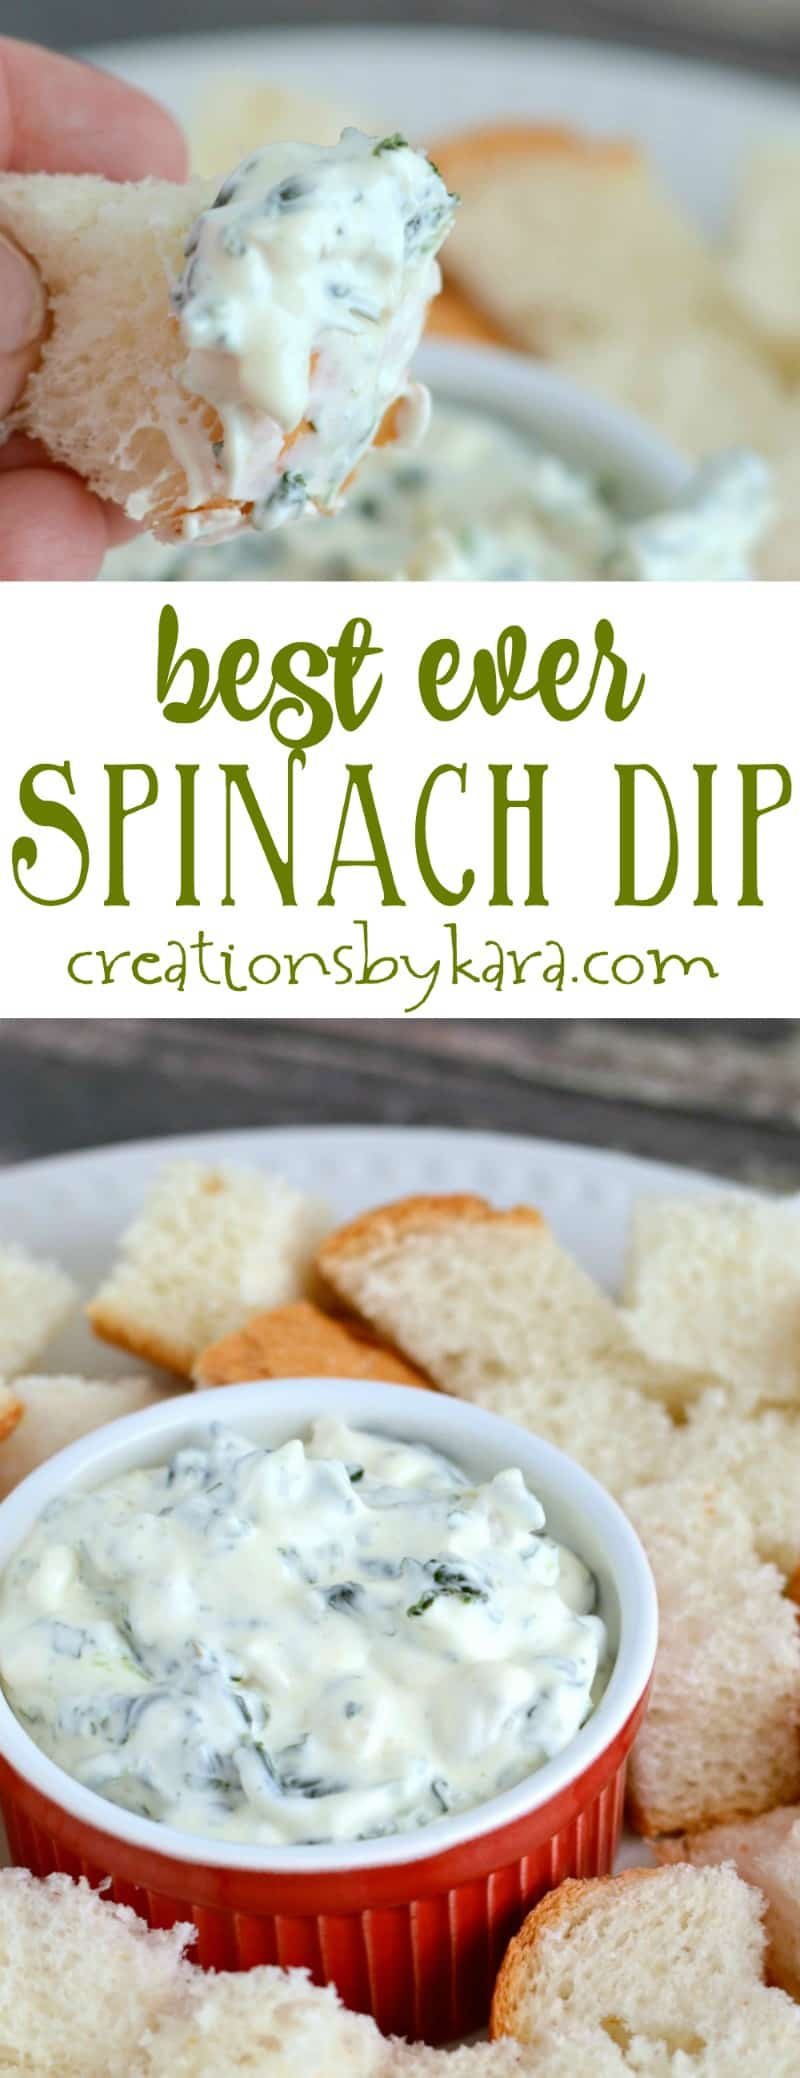 Everyone loves this creamy spinach dip. It is easy to make, and is always a hit at parties. A perfect appetizer recipe!